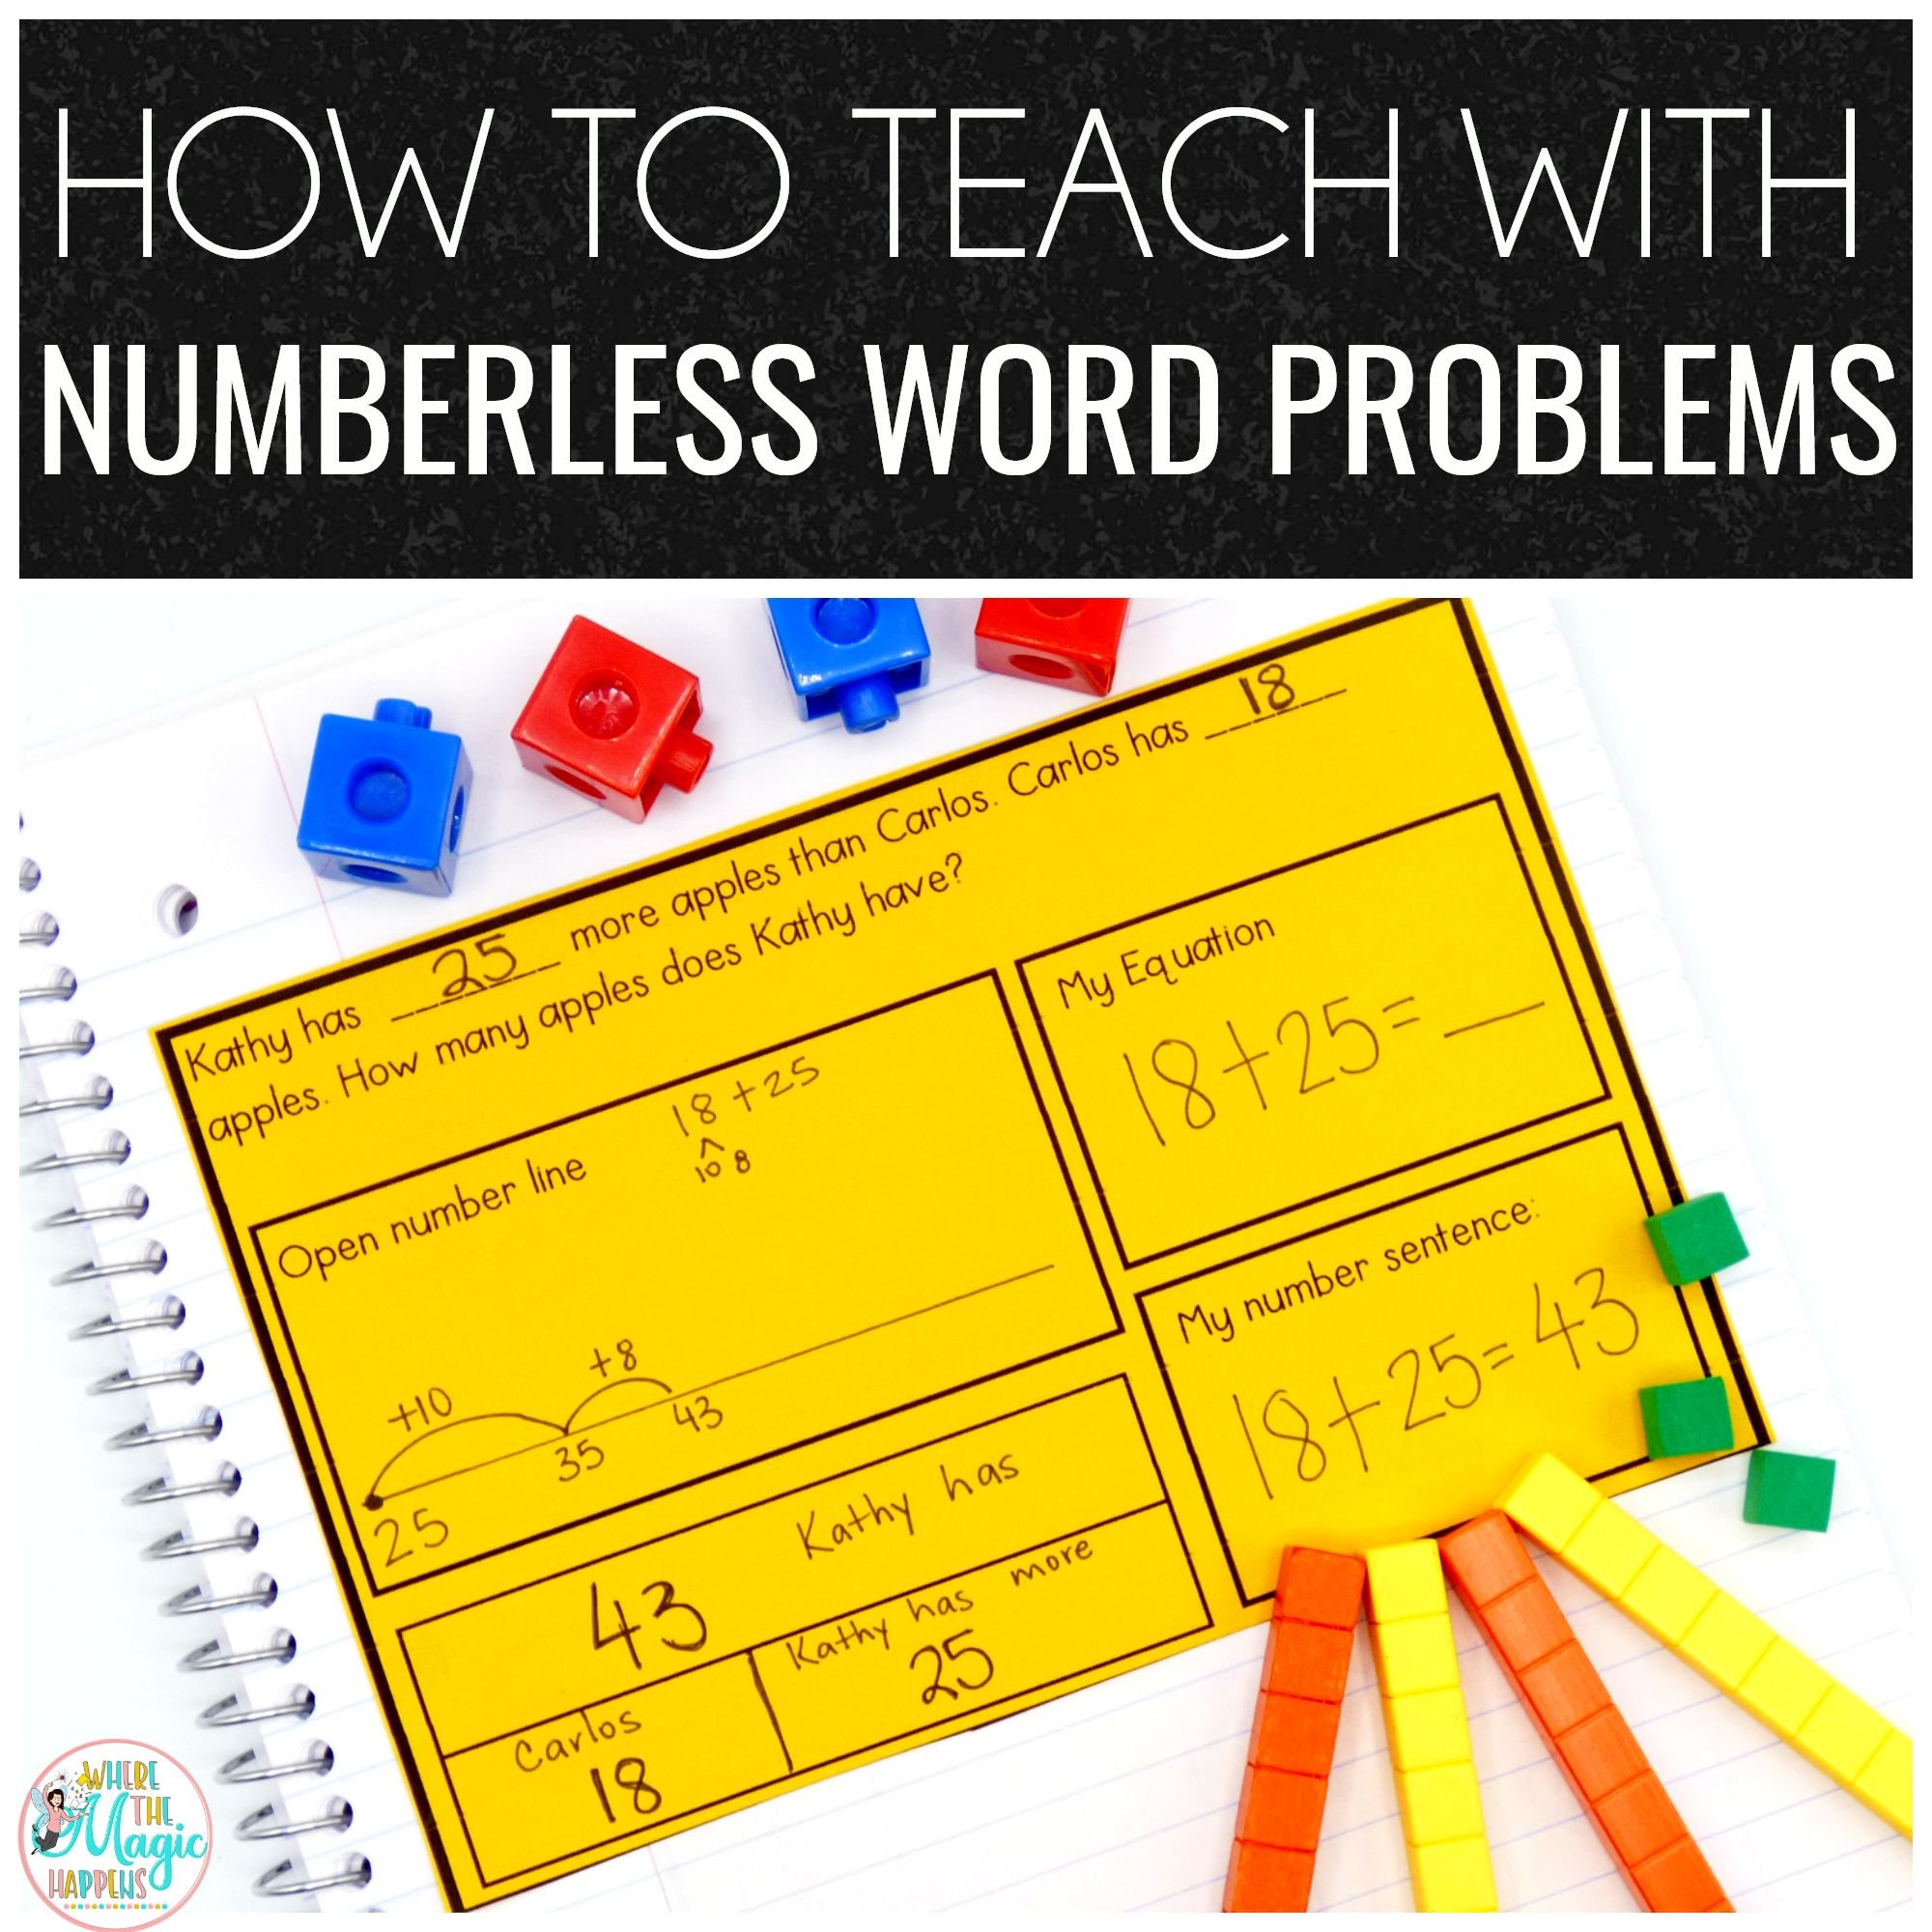 How To Teach With Numberless Word Problems